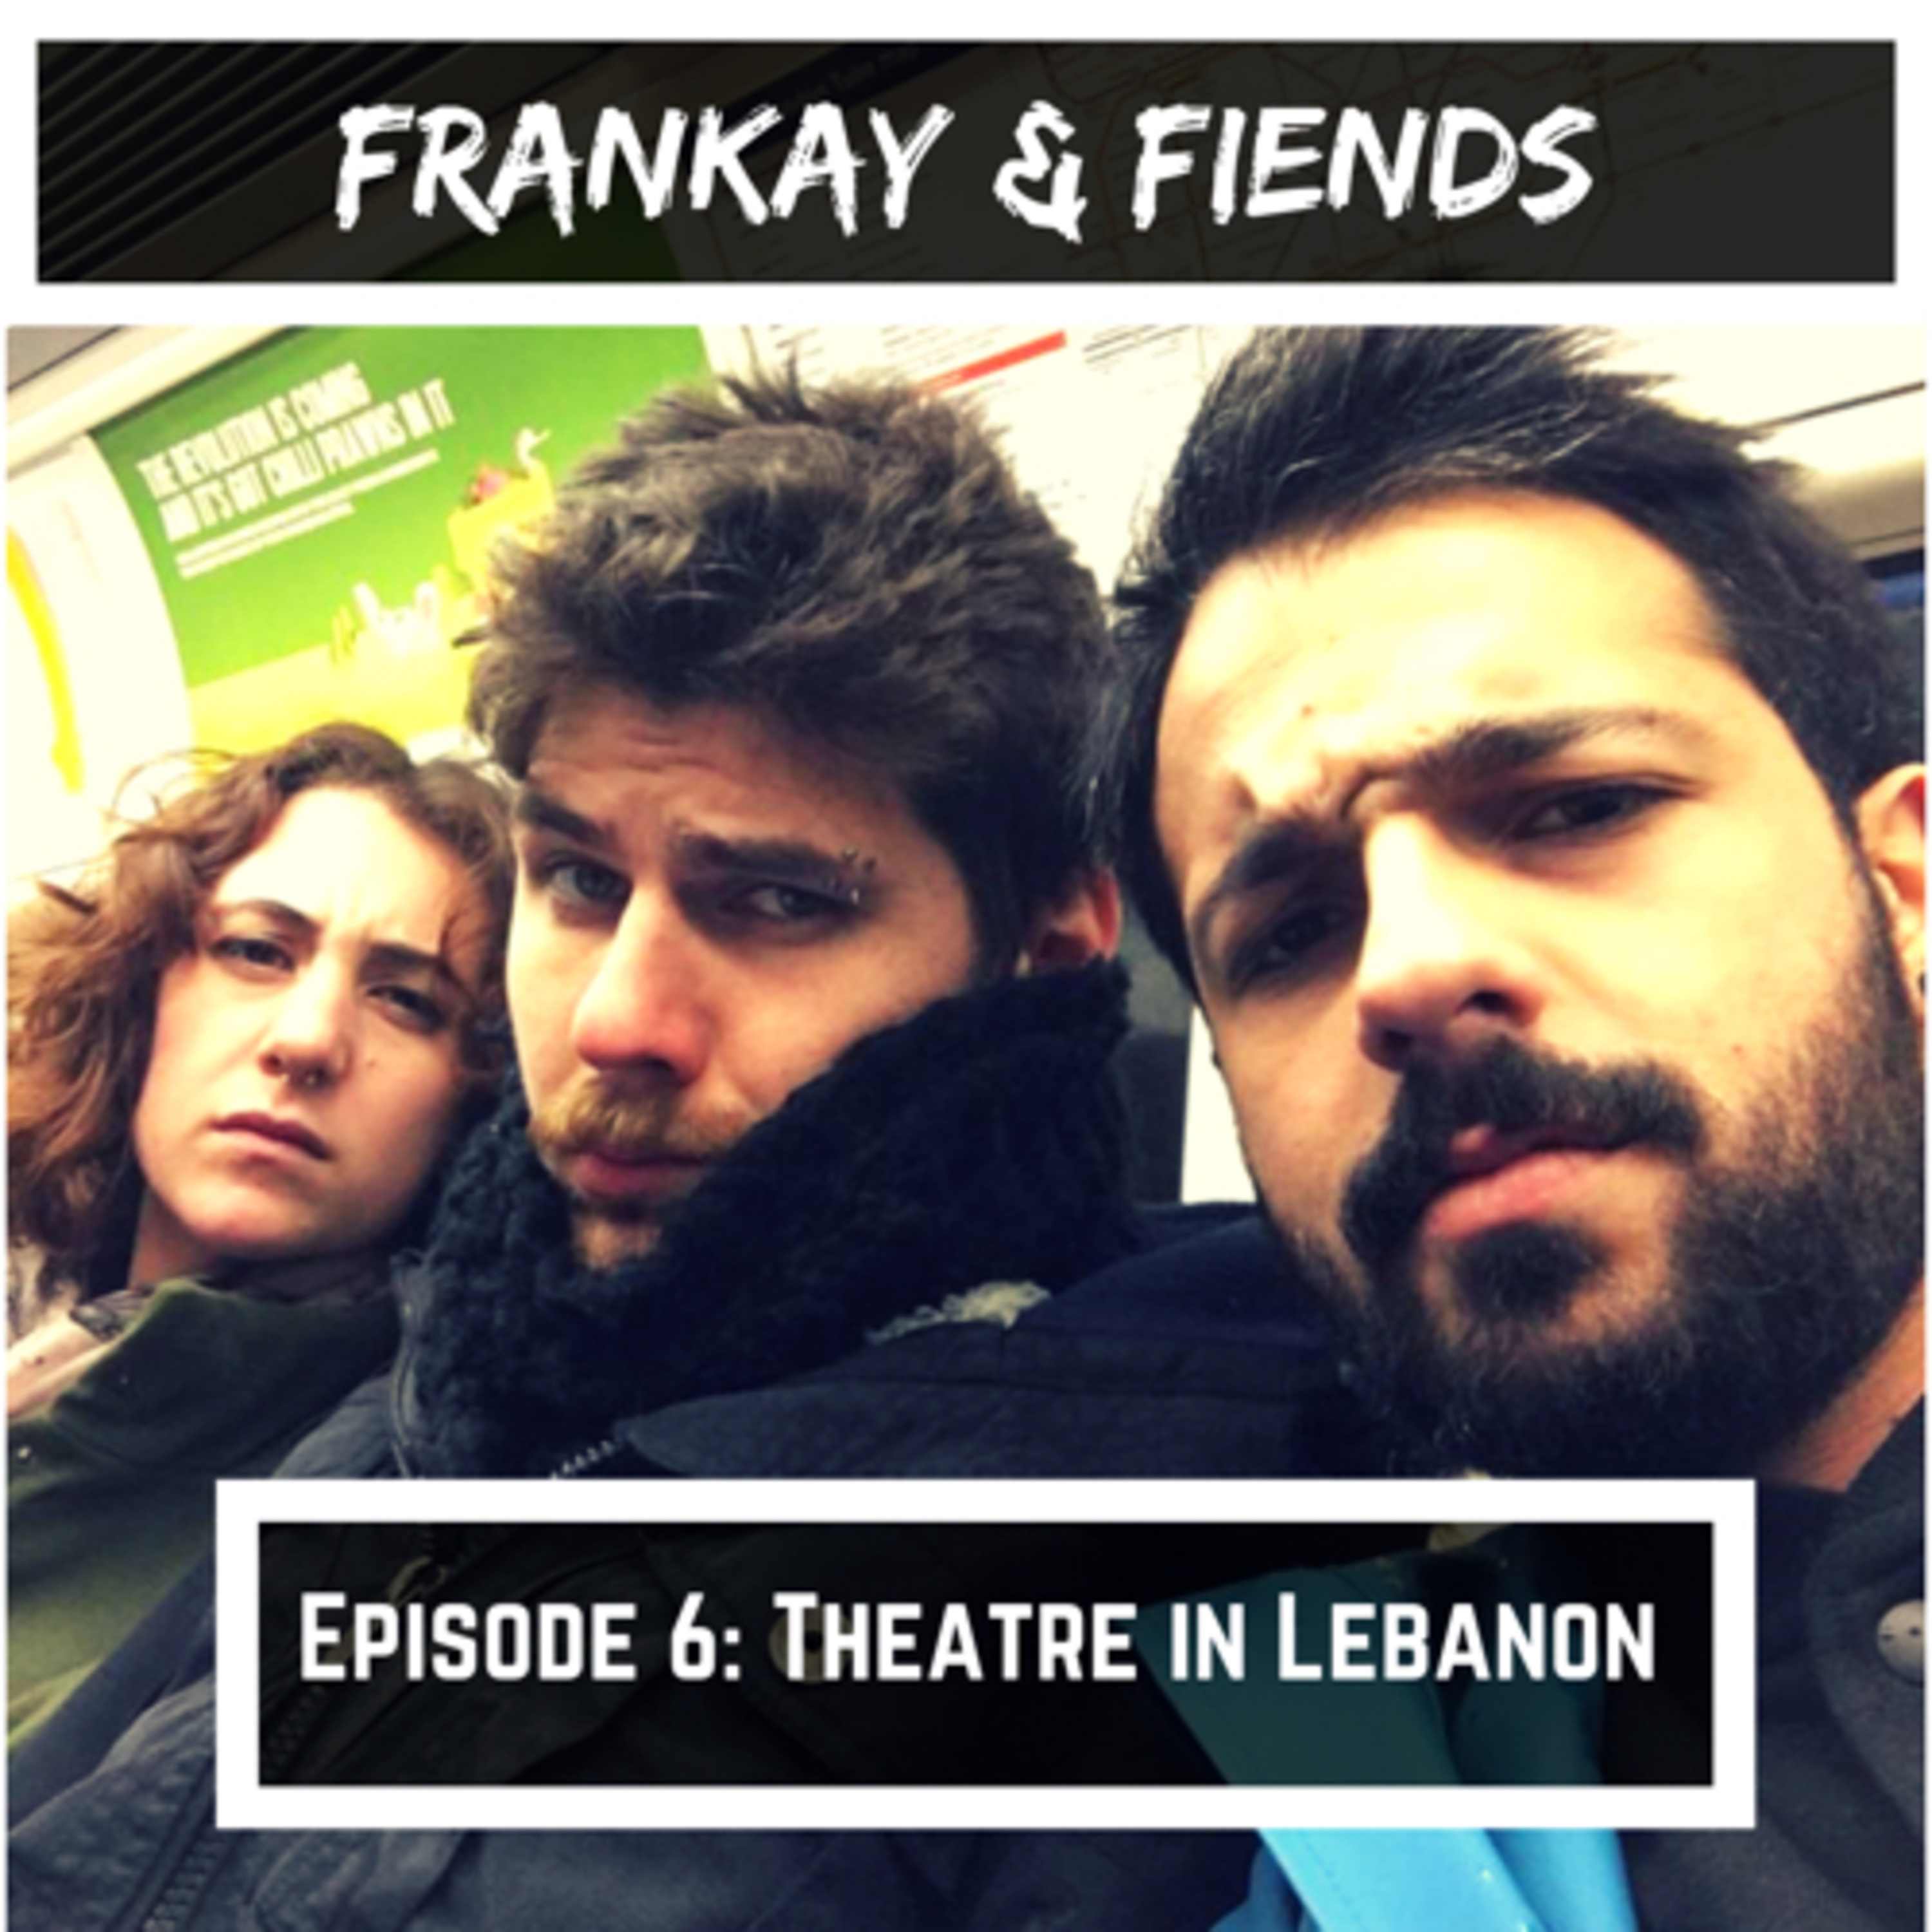 Episode 6: Theatre in Lebanon